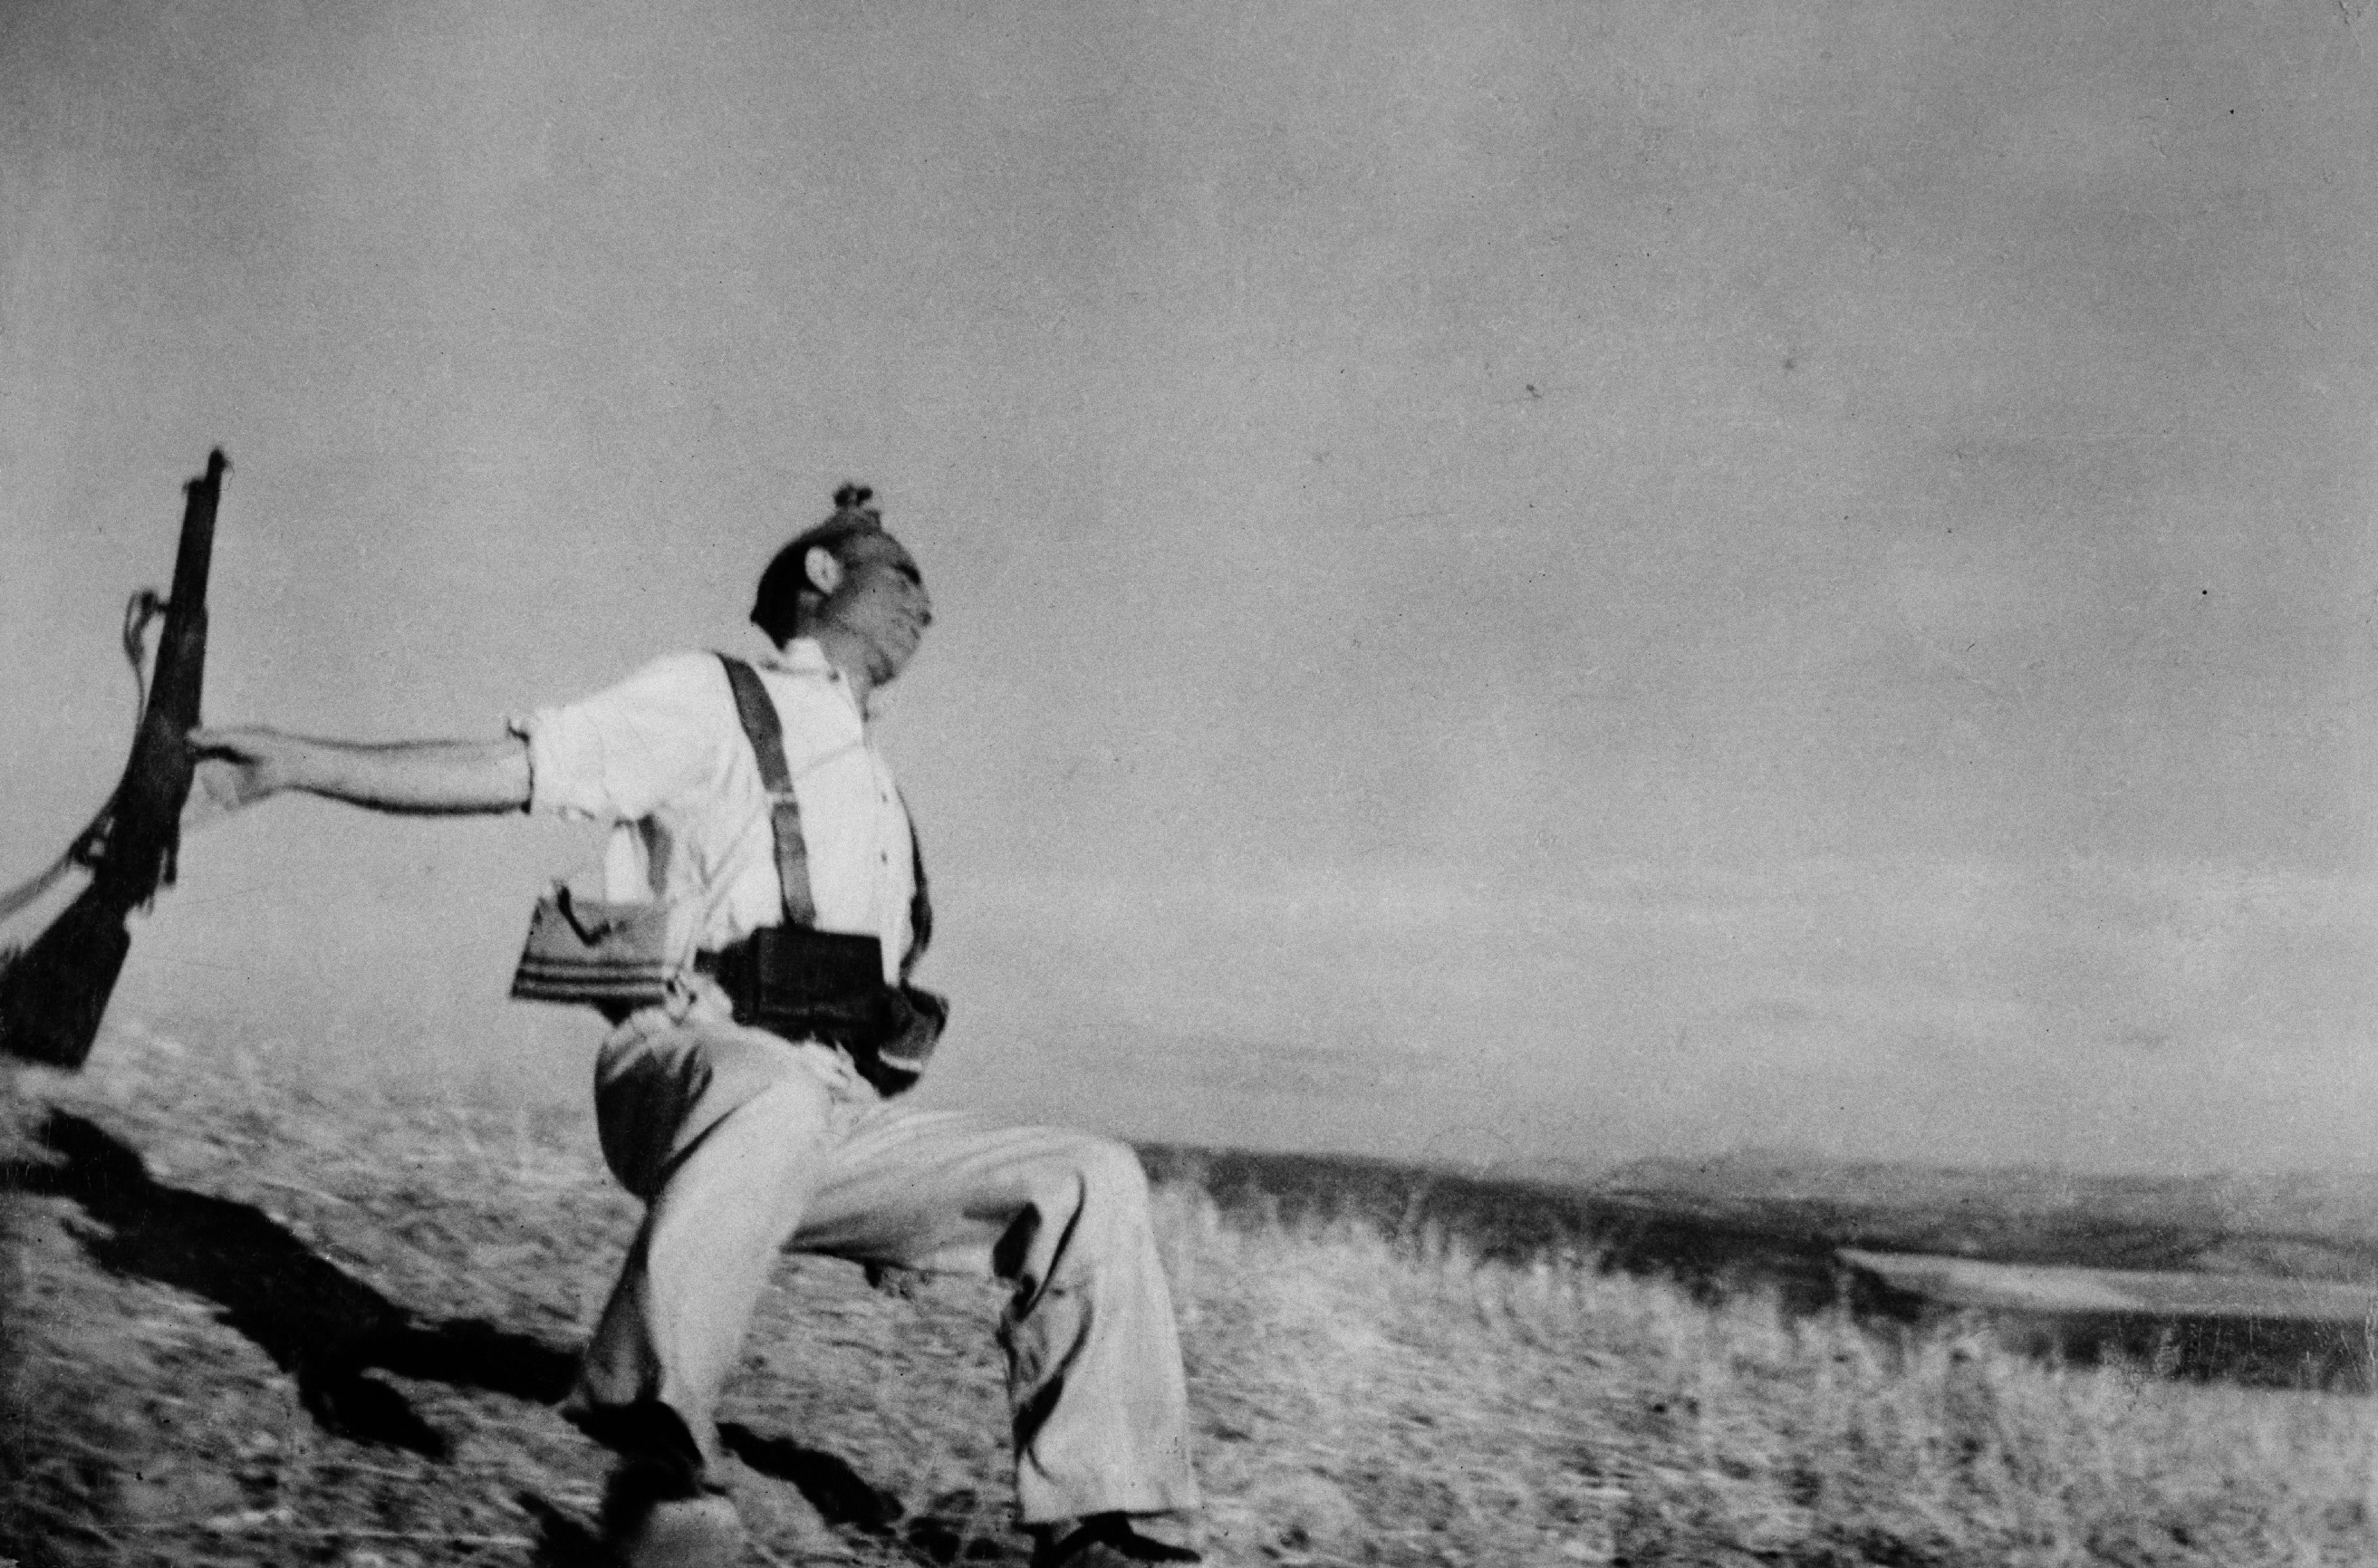 8f998af06510 Capa's most famous Photo: Loyalist militiaman at the moment of Death, Cerro  Muriano, September 5, 1936. The photo is known commonly as The Falling  Soldier.